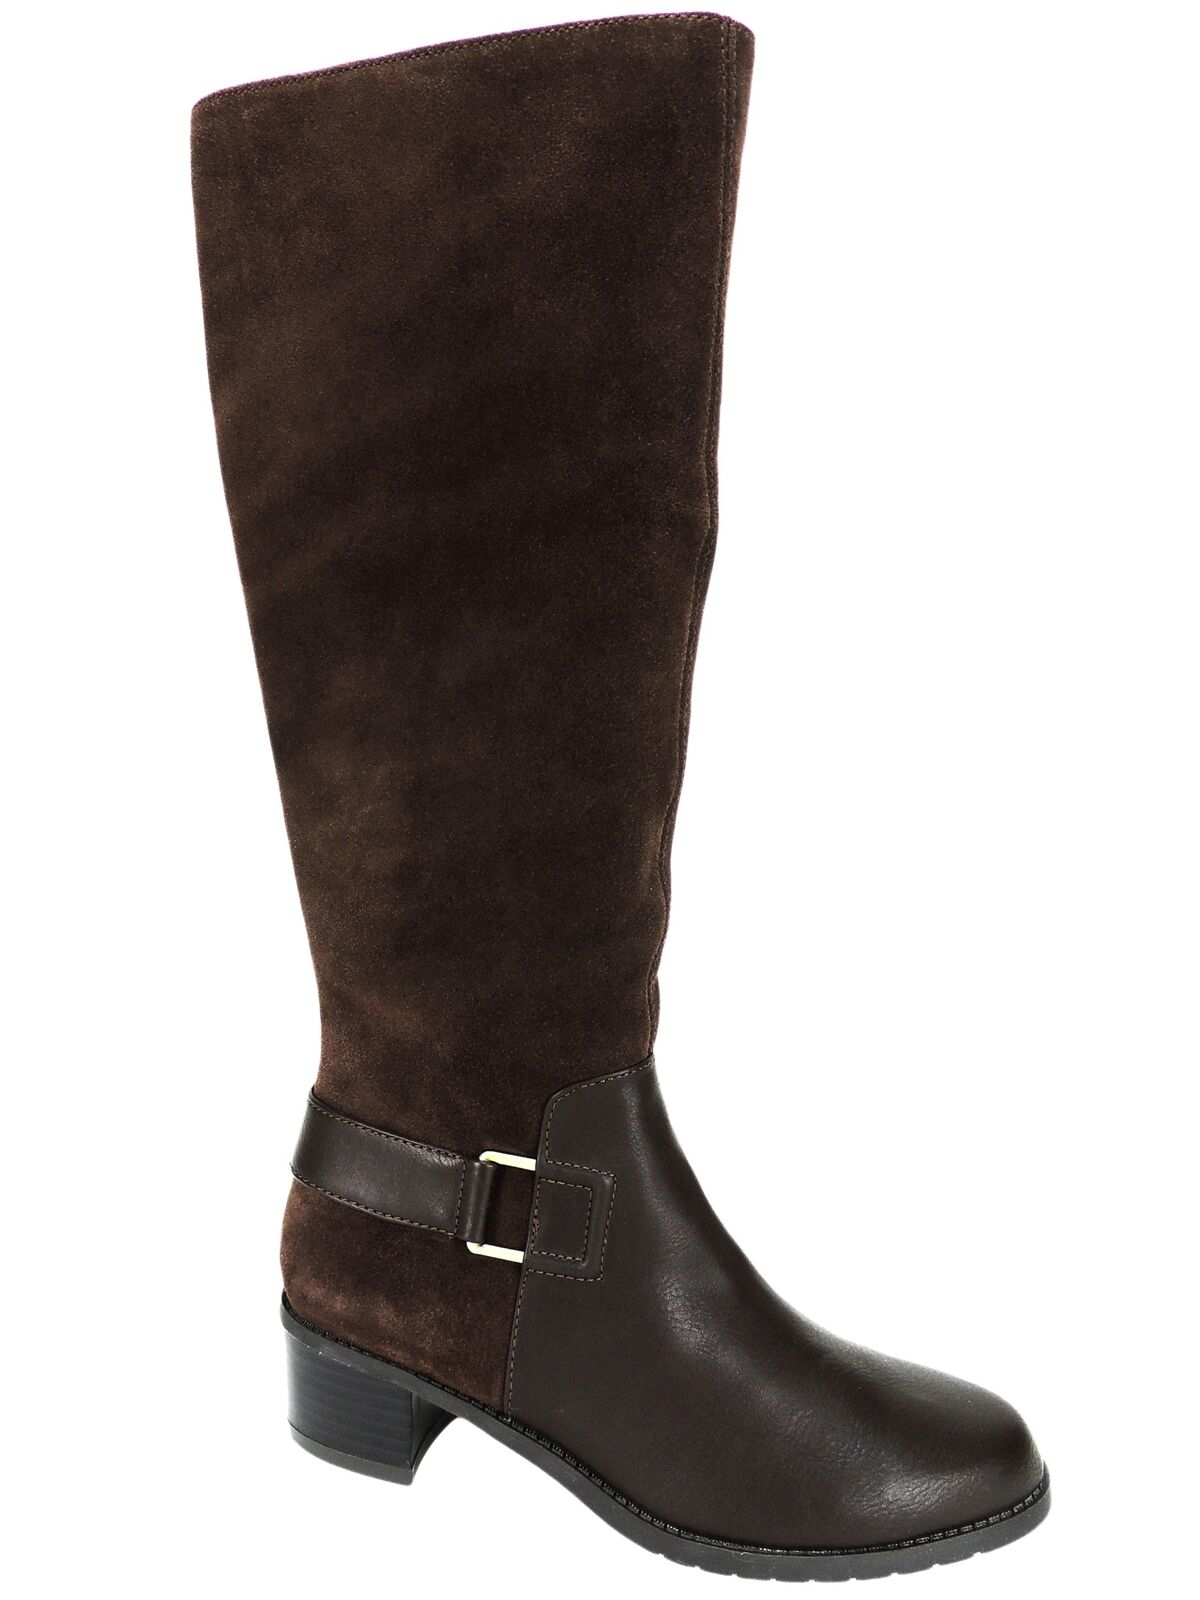 Aerosoles Women's After Hours Tall Boots Dark Brown Combo Size 5.5 M